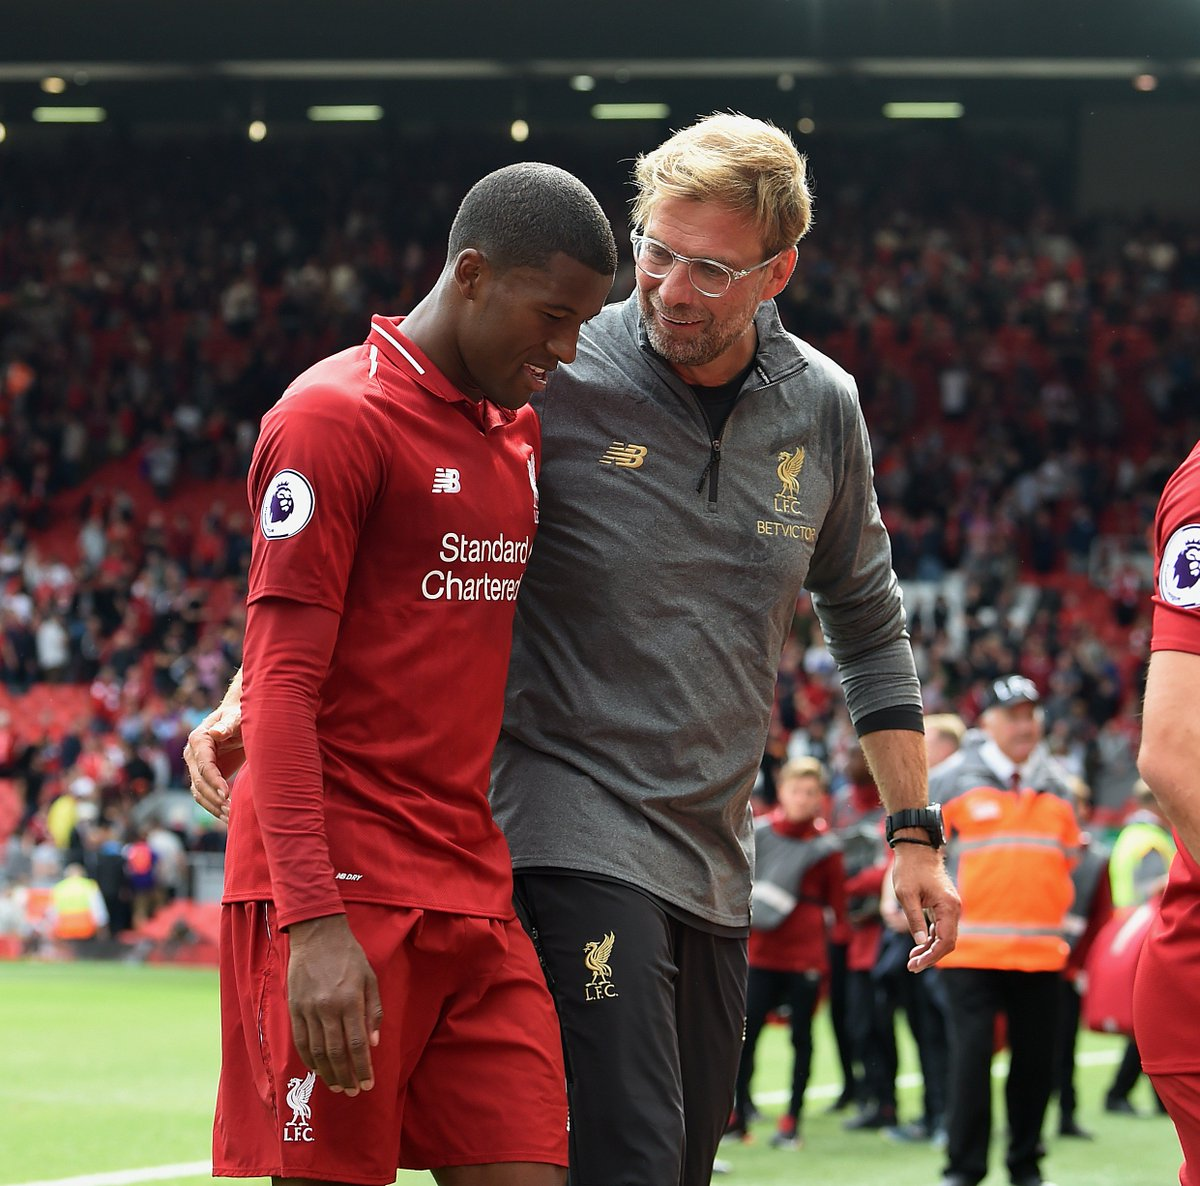 Klopp explains how midfield hard work made 4-0 win. 🤜🤛 bit.ly/2MISoiG